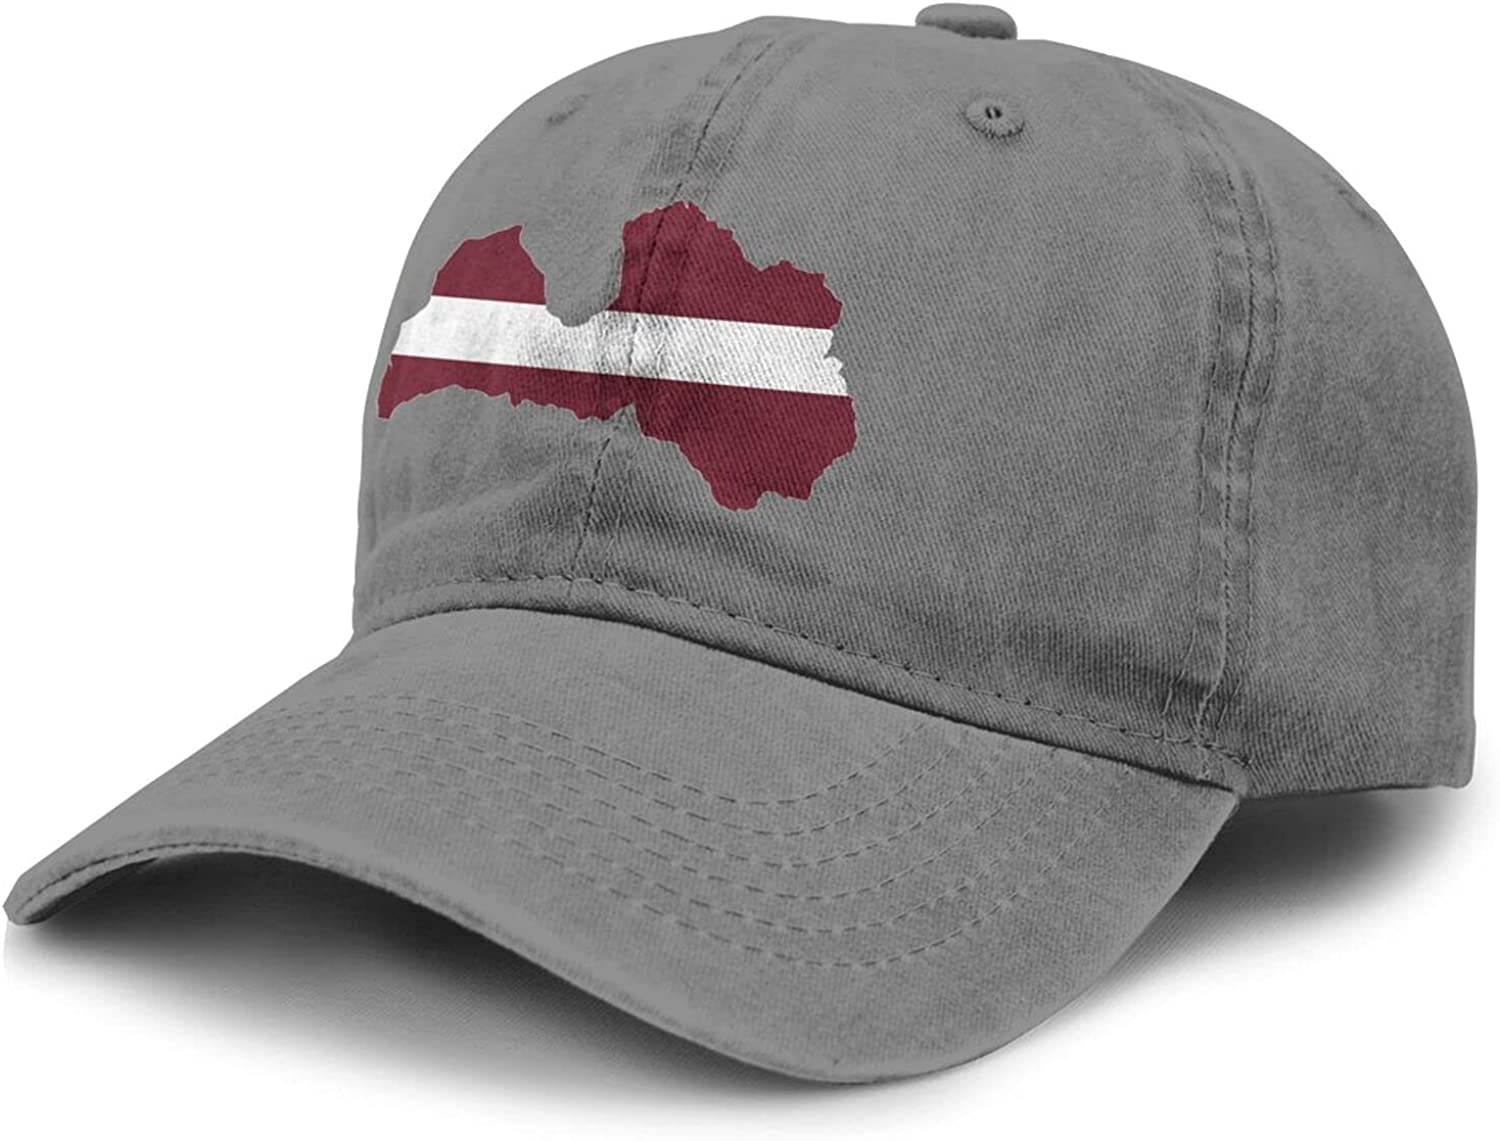 PARKNOTES Latvia Flag Country of Luxury Durable Free shipping on posting reviews Europe Adult Cheap and